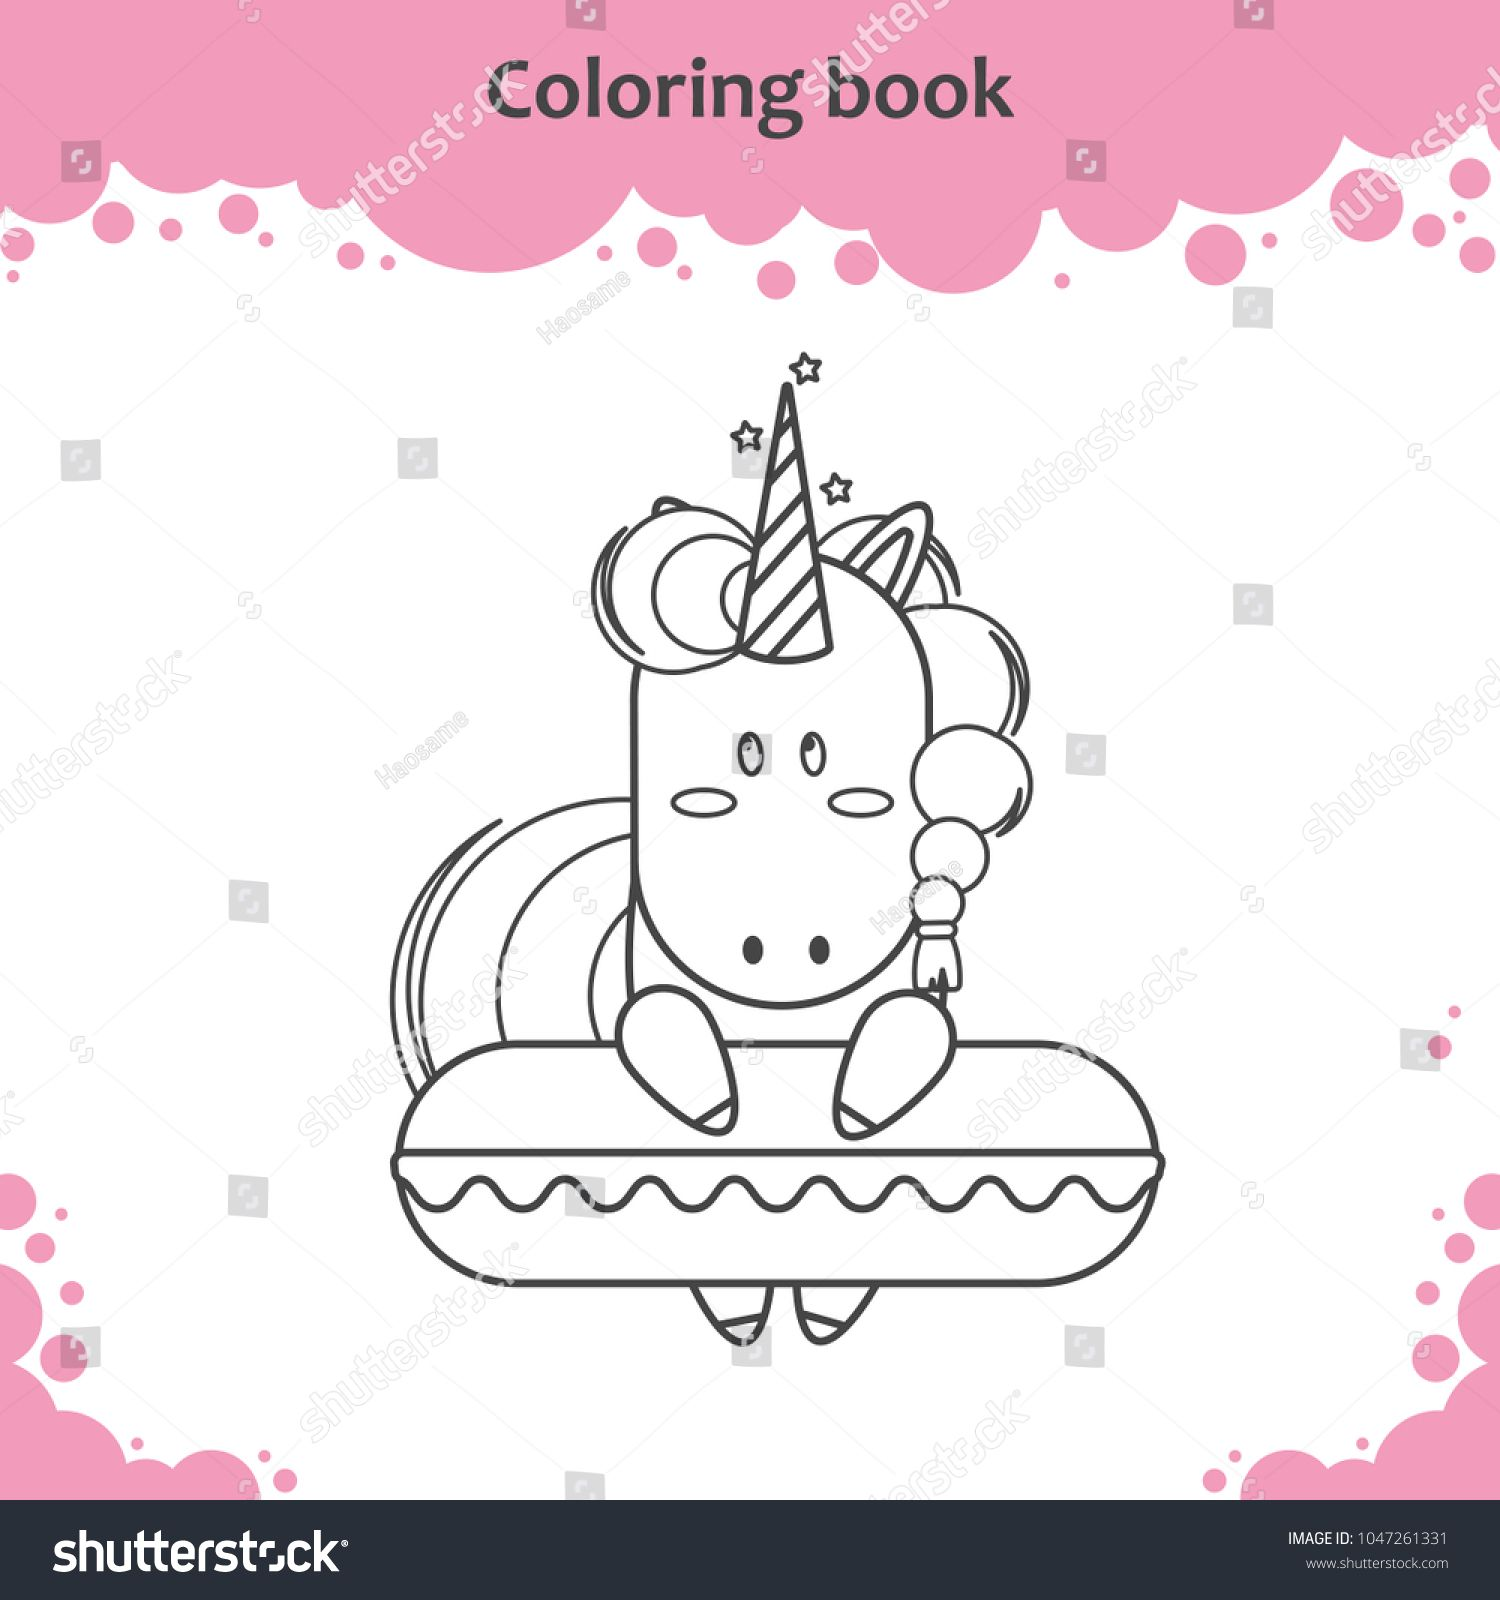 Cute Unicorn With Swimming Circle Coloring Page For Kids Ad Ad Swimming Unicorn Cute Circle Coloring Pages For Kids Cute Unicorn Coloring Pages